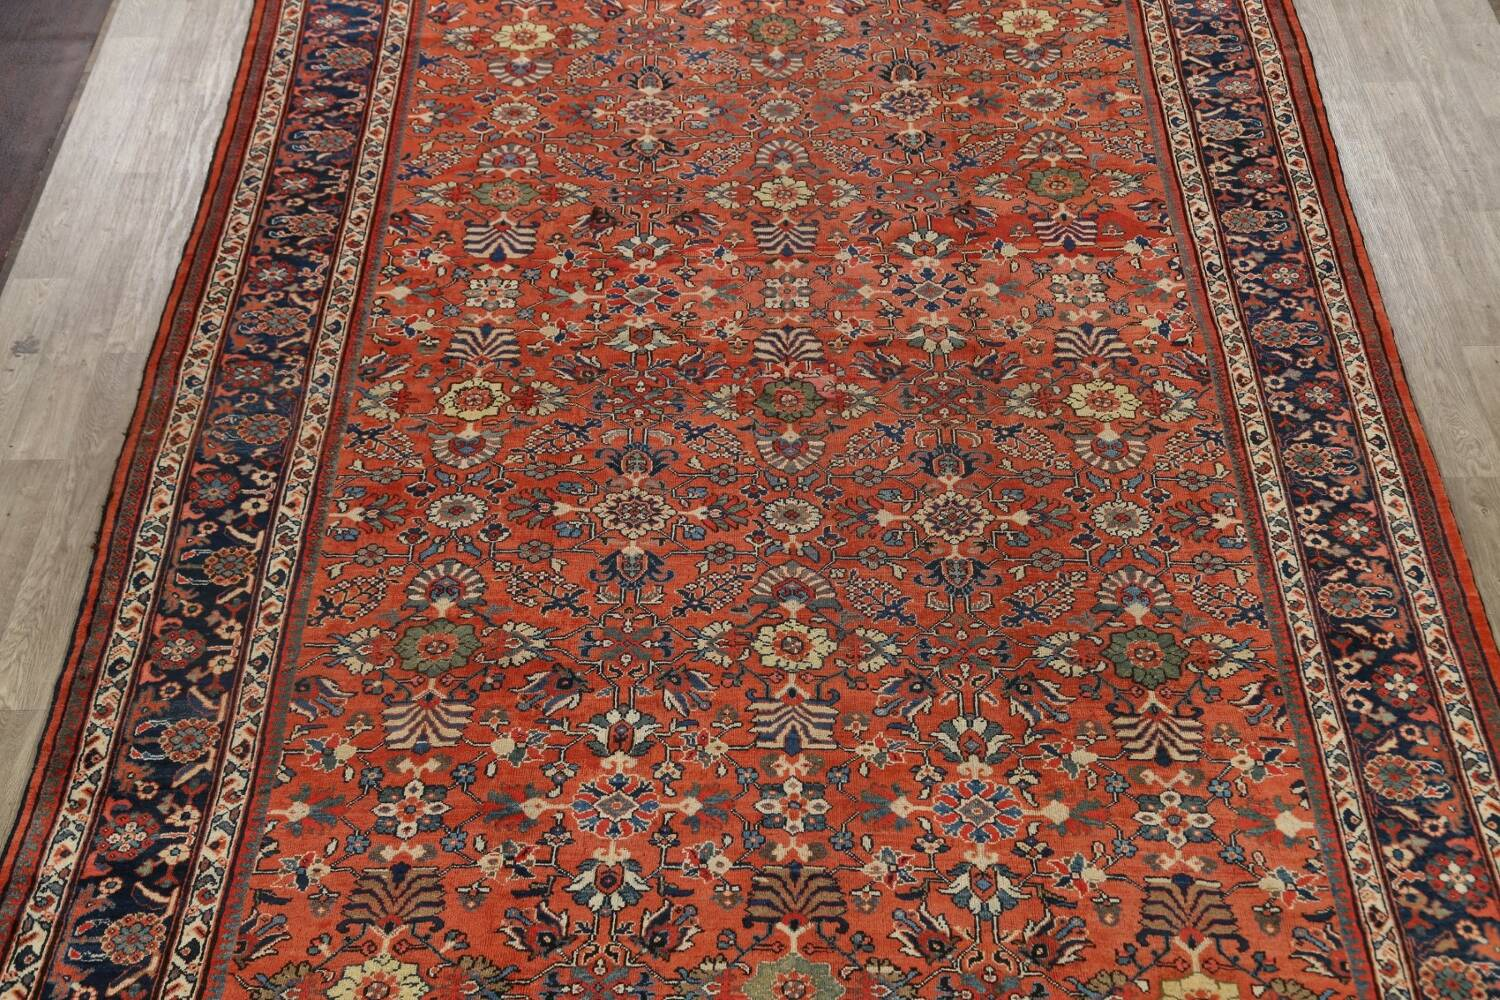 Pre-1900 Antique Vegetable Dye Sultanabad Persian Area Rug 10x14 image 3